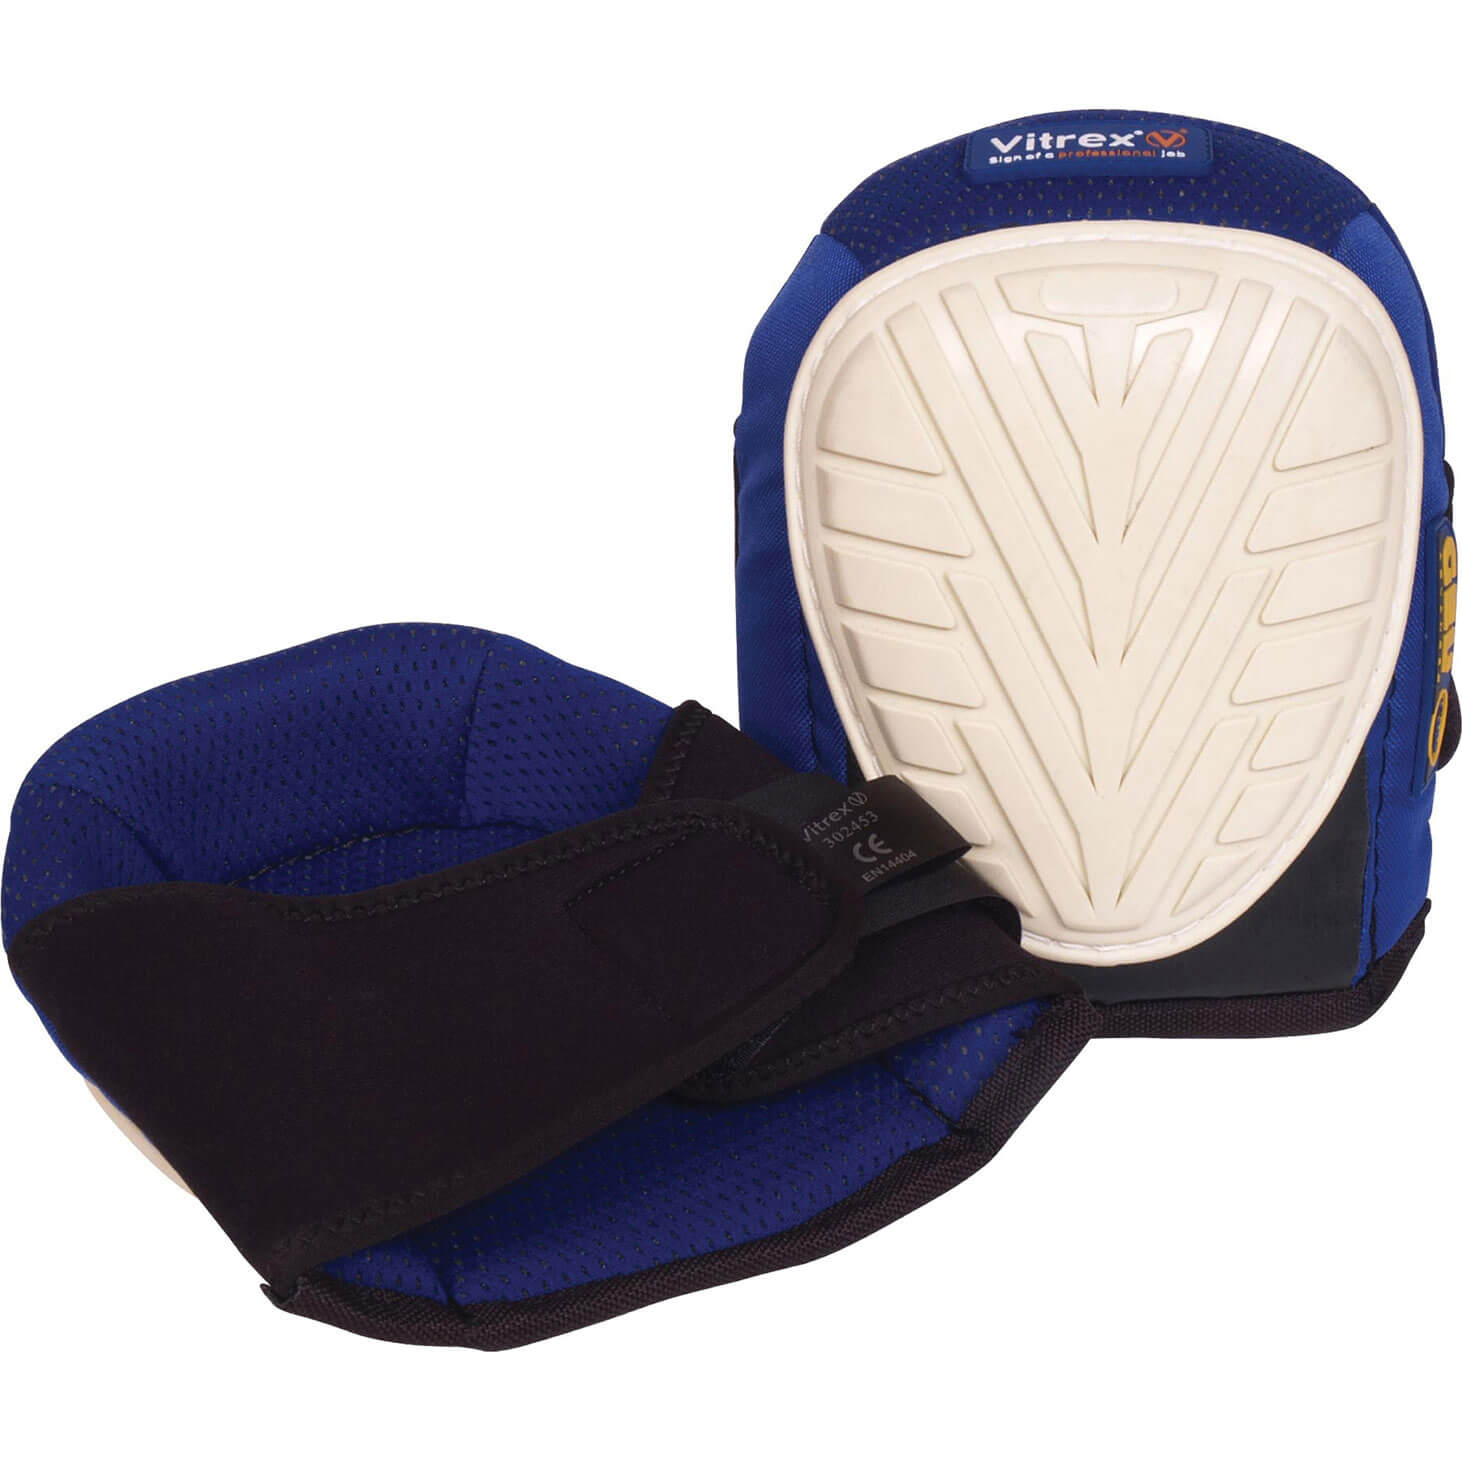 Vitrex Gel Grippa Anti Slip Knee Pads